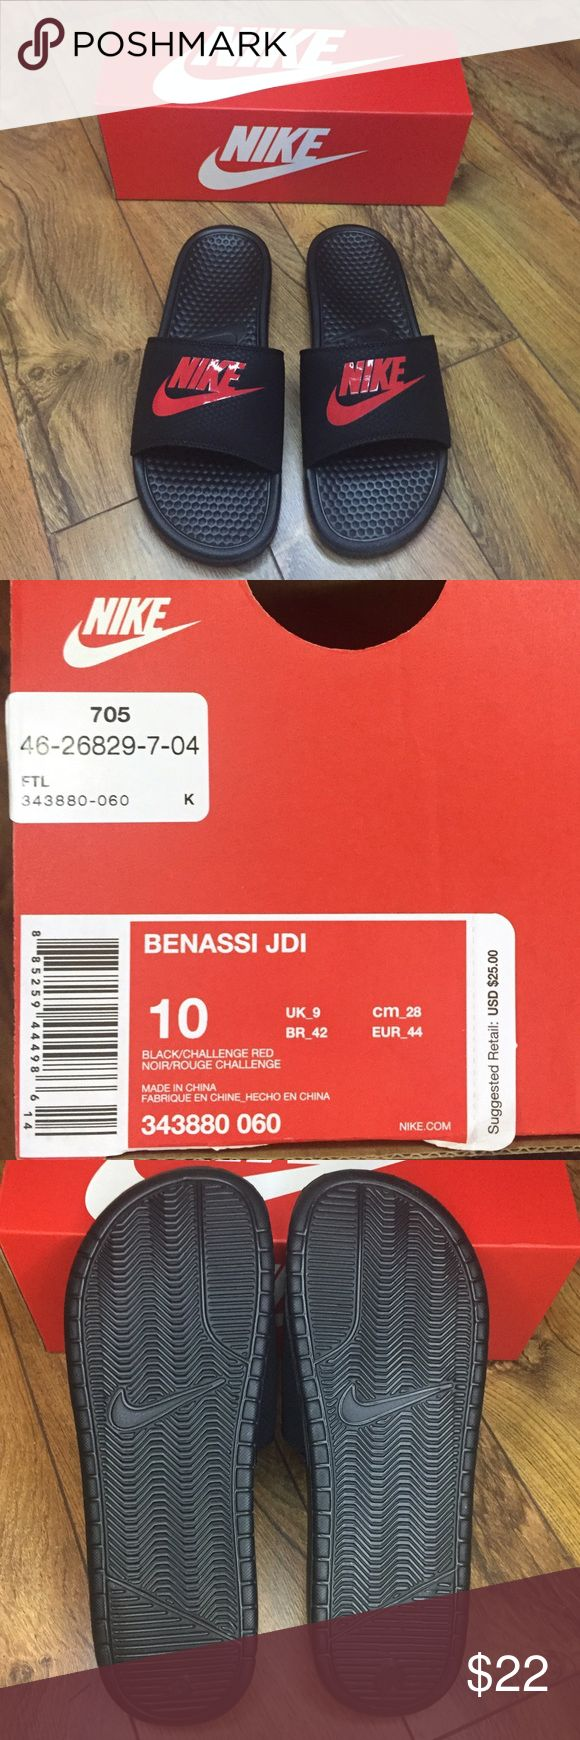 Nike Benassi JDI Mens Athletic Sandals NEW WITH BOX! NEVER WORN! Size 10. A post-gym and at-home staple almost everywhere these Nike Slides epitomize relaxation and winding down. Simple and comfortable; not much else to ask for from your slides. Nike Shoes Sandals & Flip-Flops